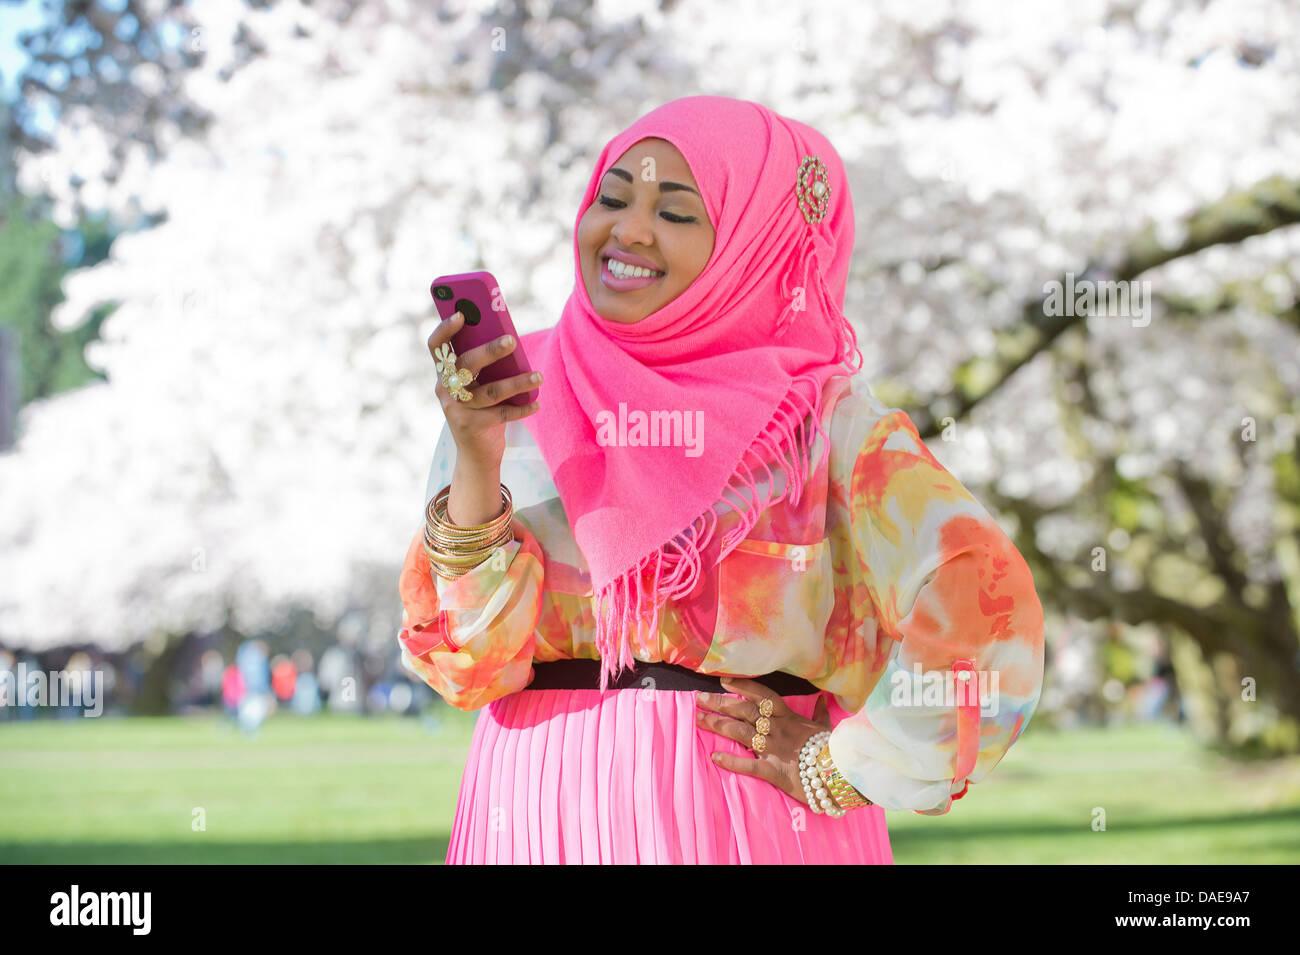 Young woman in park wearing pink headscarf and skirt - Stock Image